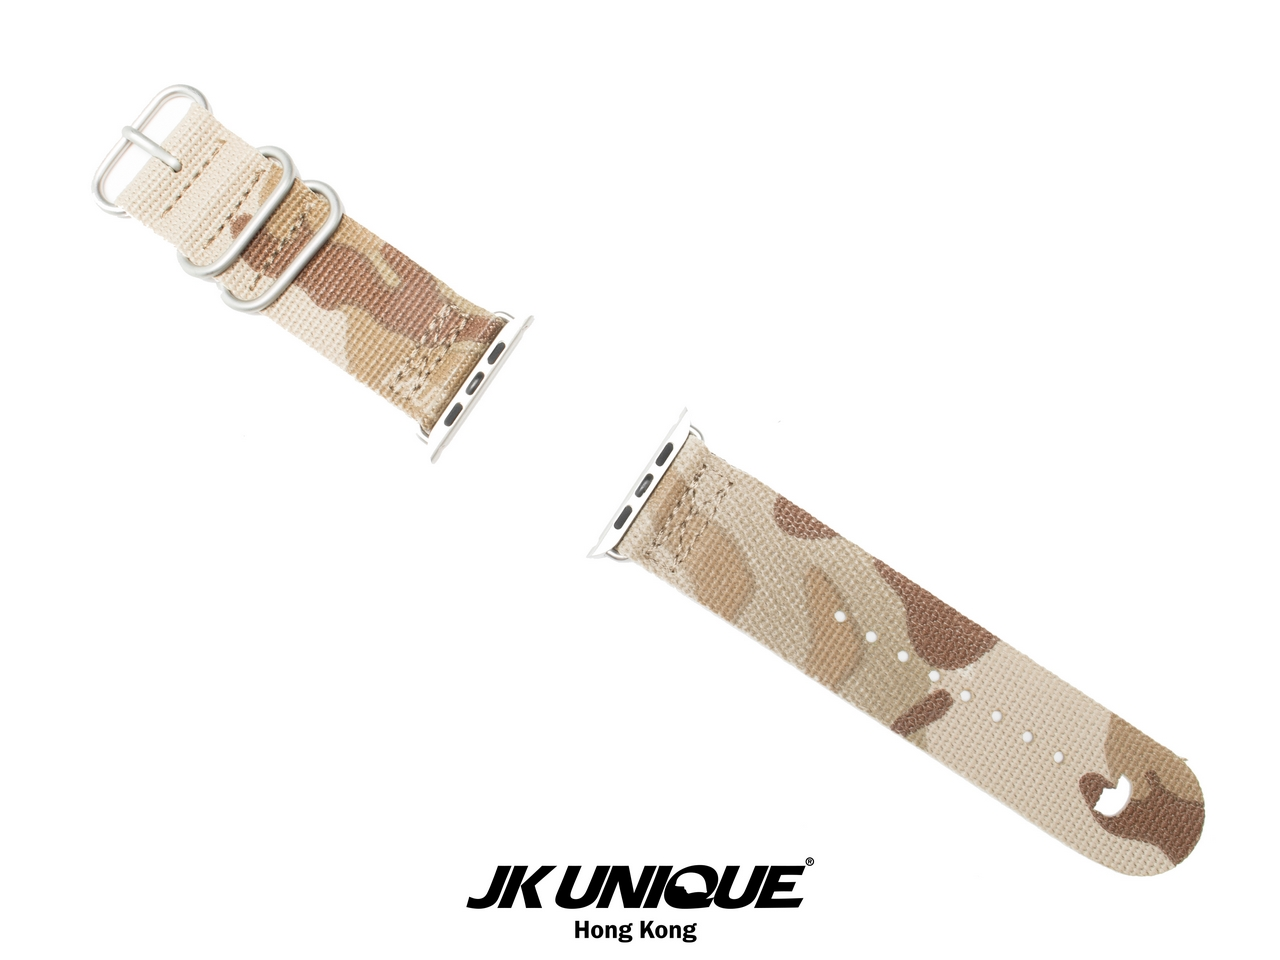 JK-UNIQUE-CAMO-NATO-Apple-Watch-Strap-42mm-SV-Multicam-Arid-1 (1280).jpg